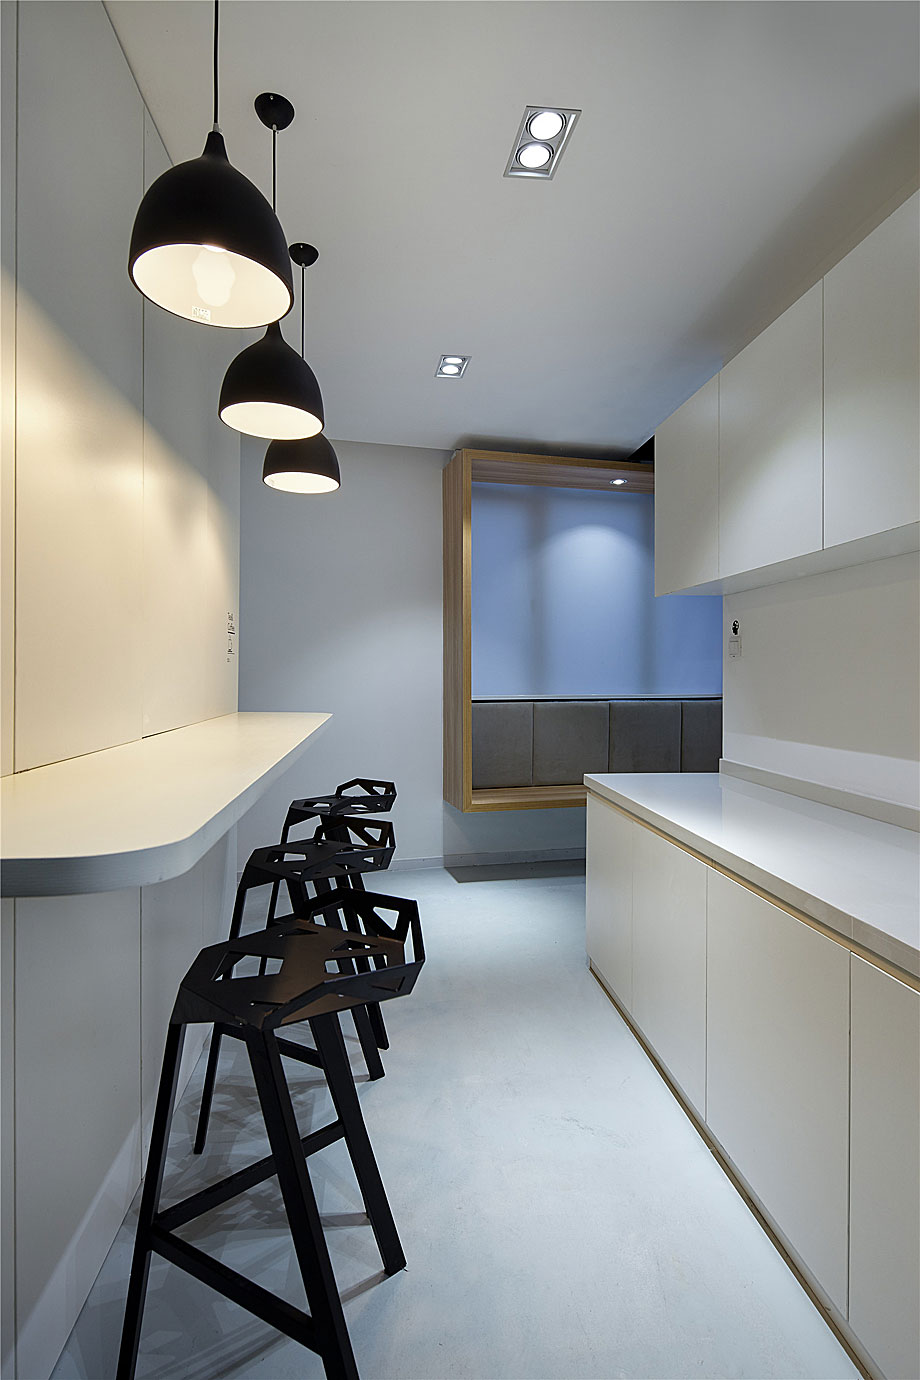 less-is-more-intoo-office-muxin-studio-15